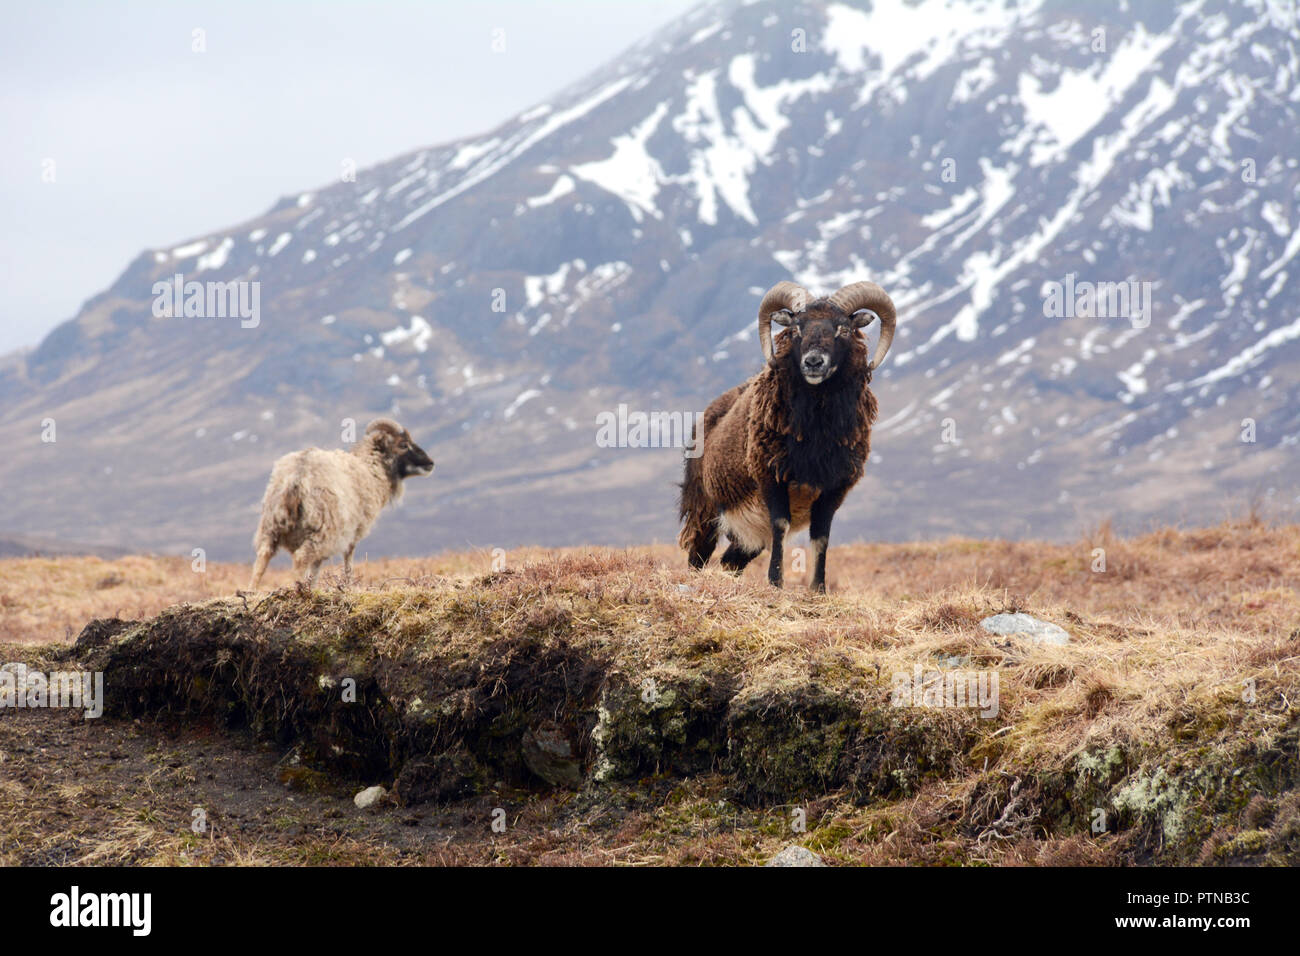 Two feral mountain goats in a meadow below a snowy Buachaille Etive Mor, near Glen Etive, in the Scottish Highlands, Scotland, United Kingdom. - Stock Image